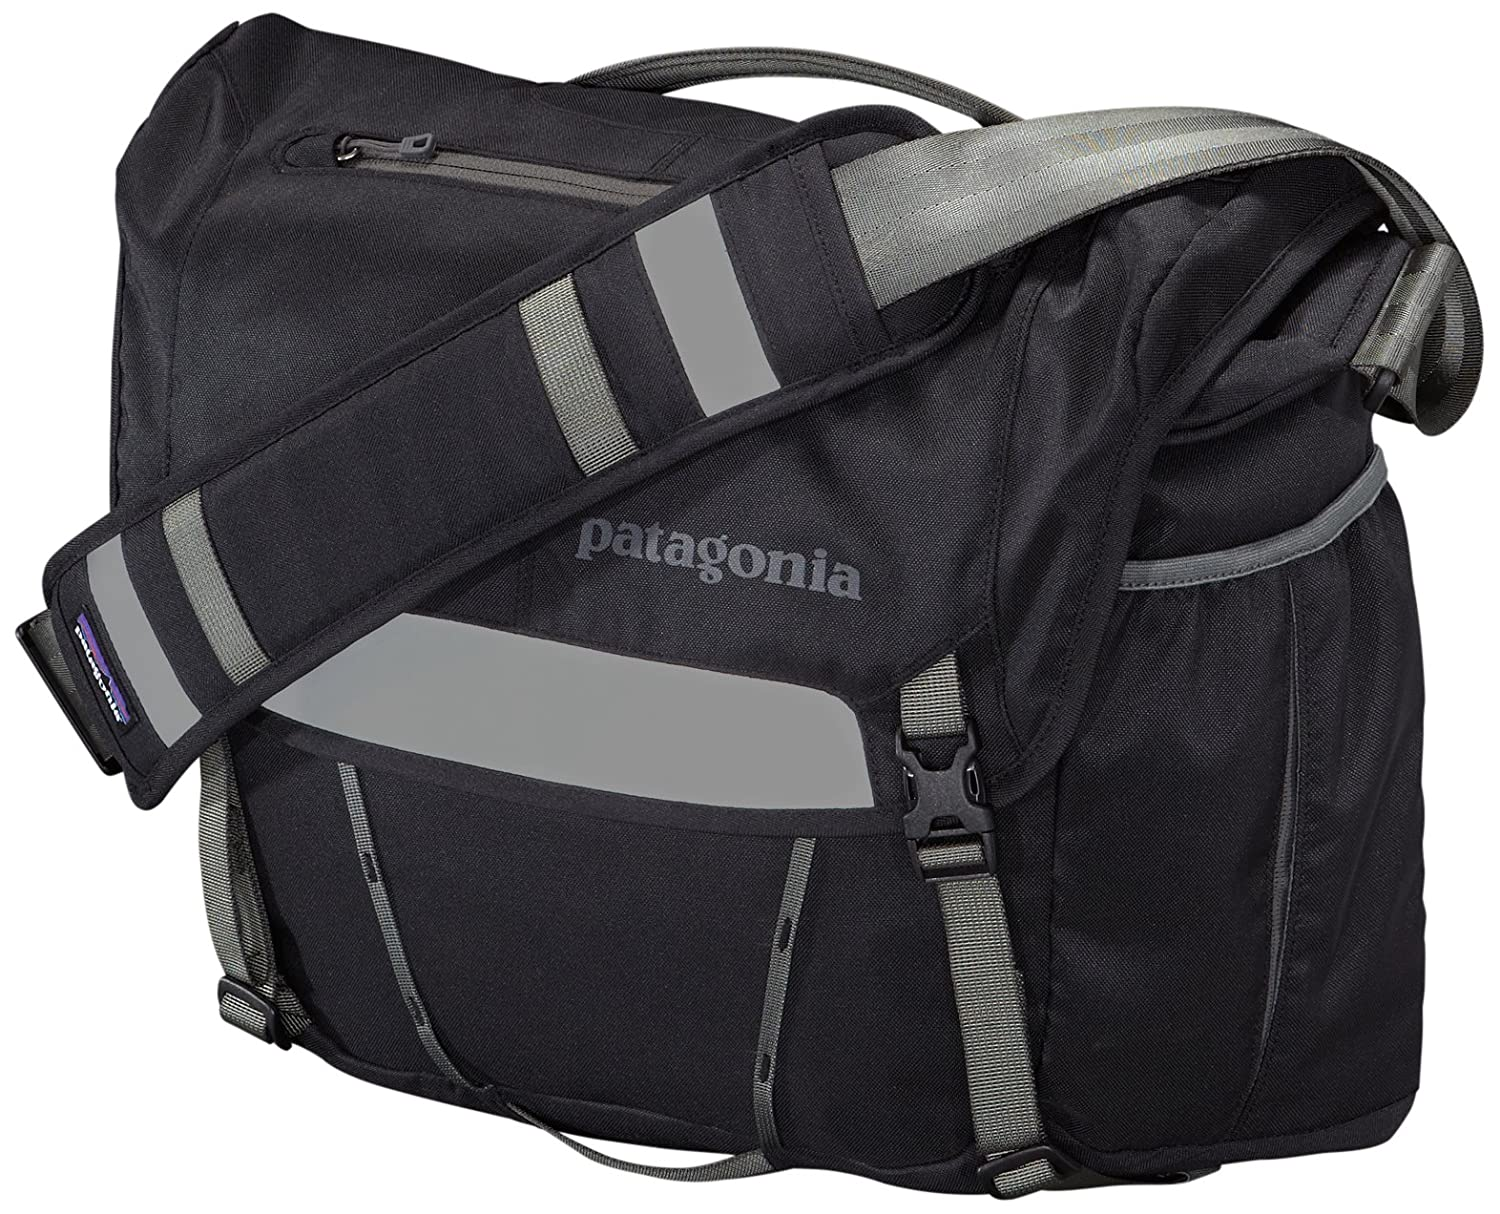 342956474a1 Patagonia half mass messenger bag black sports outdoors jpg 1500x1214 Patagonia  minimass nickel